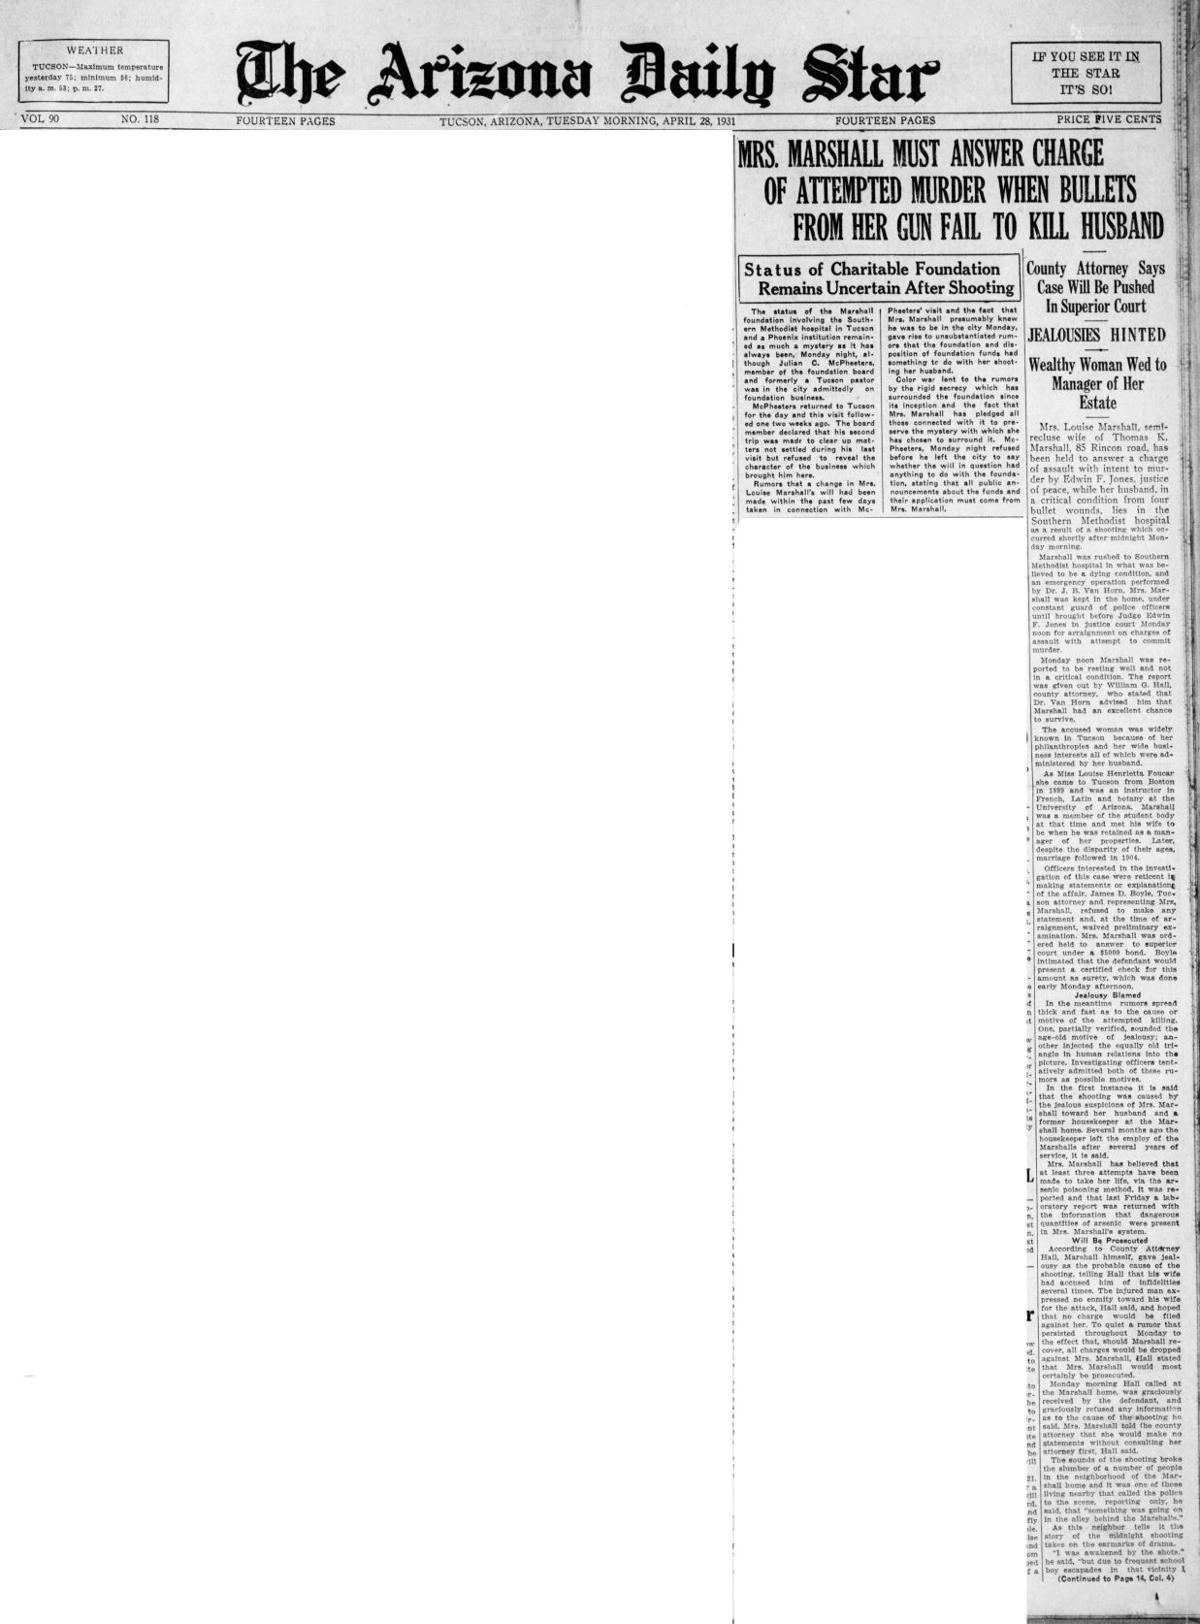 The headlines when Louise Marshall shot her husband